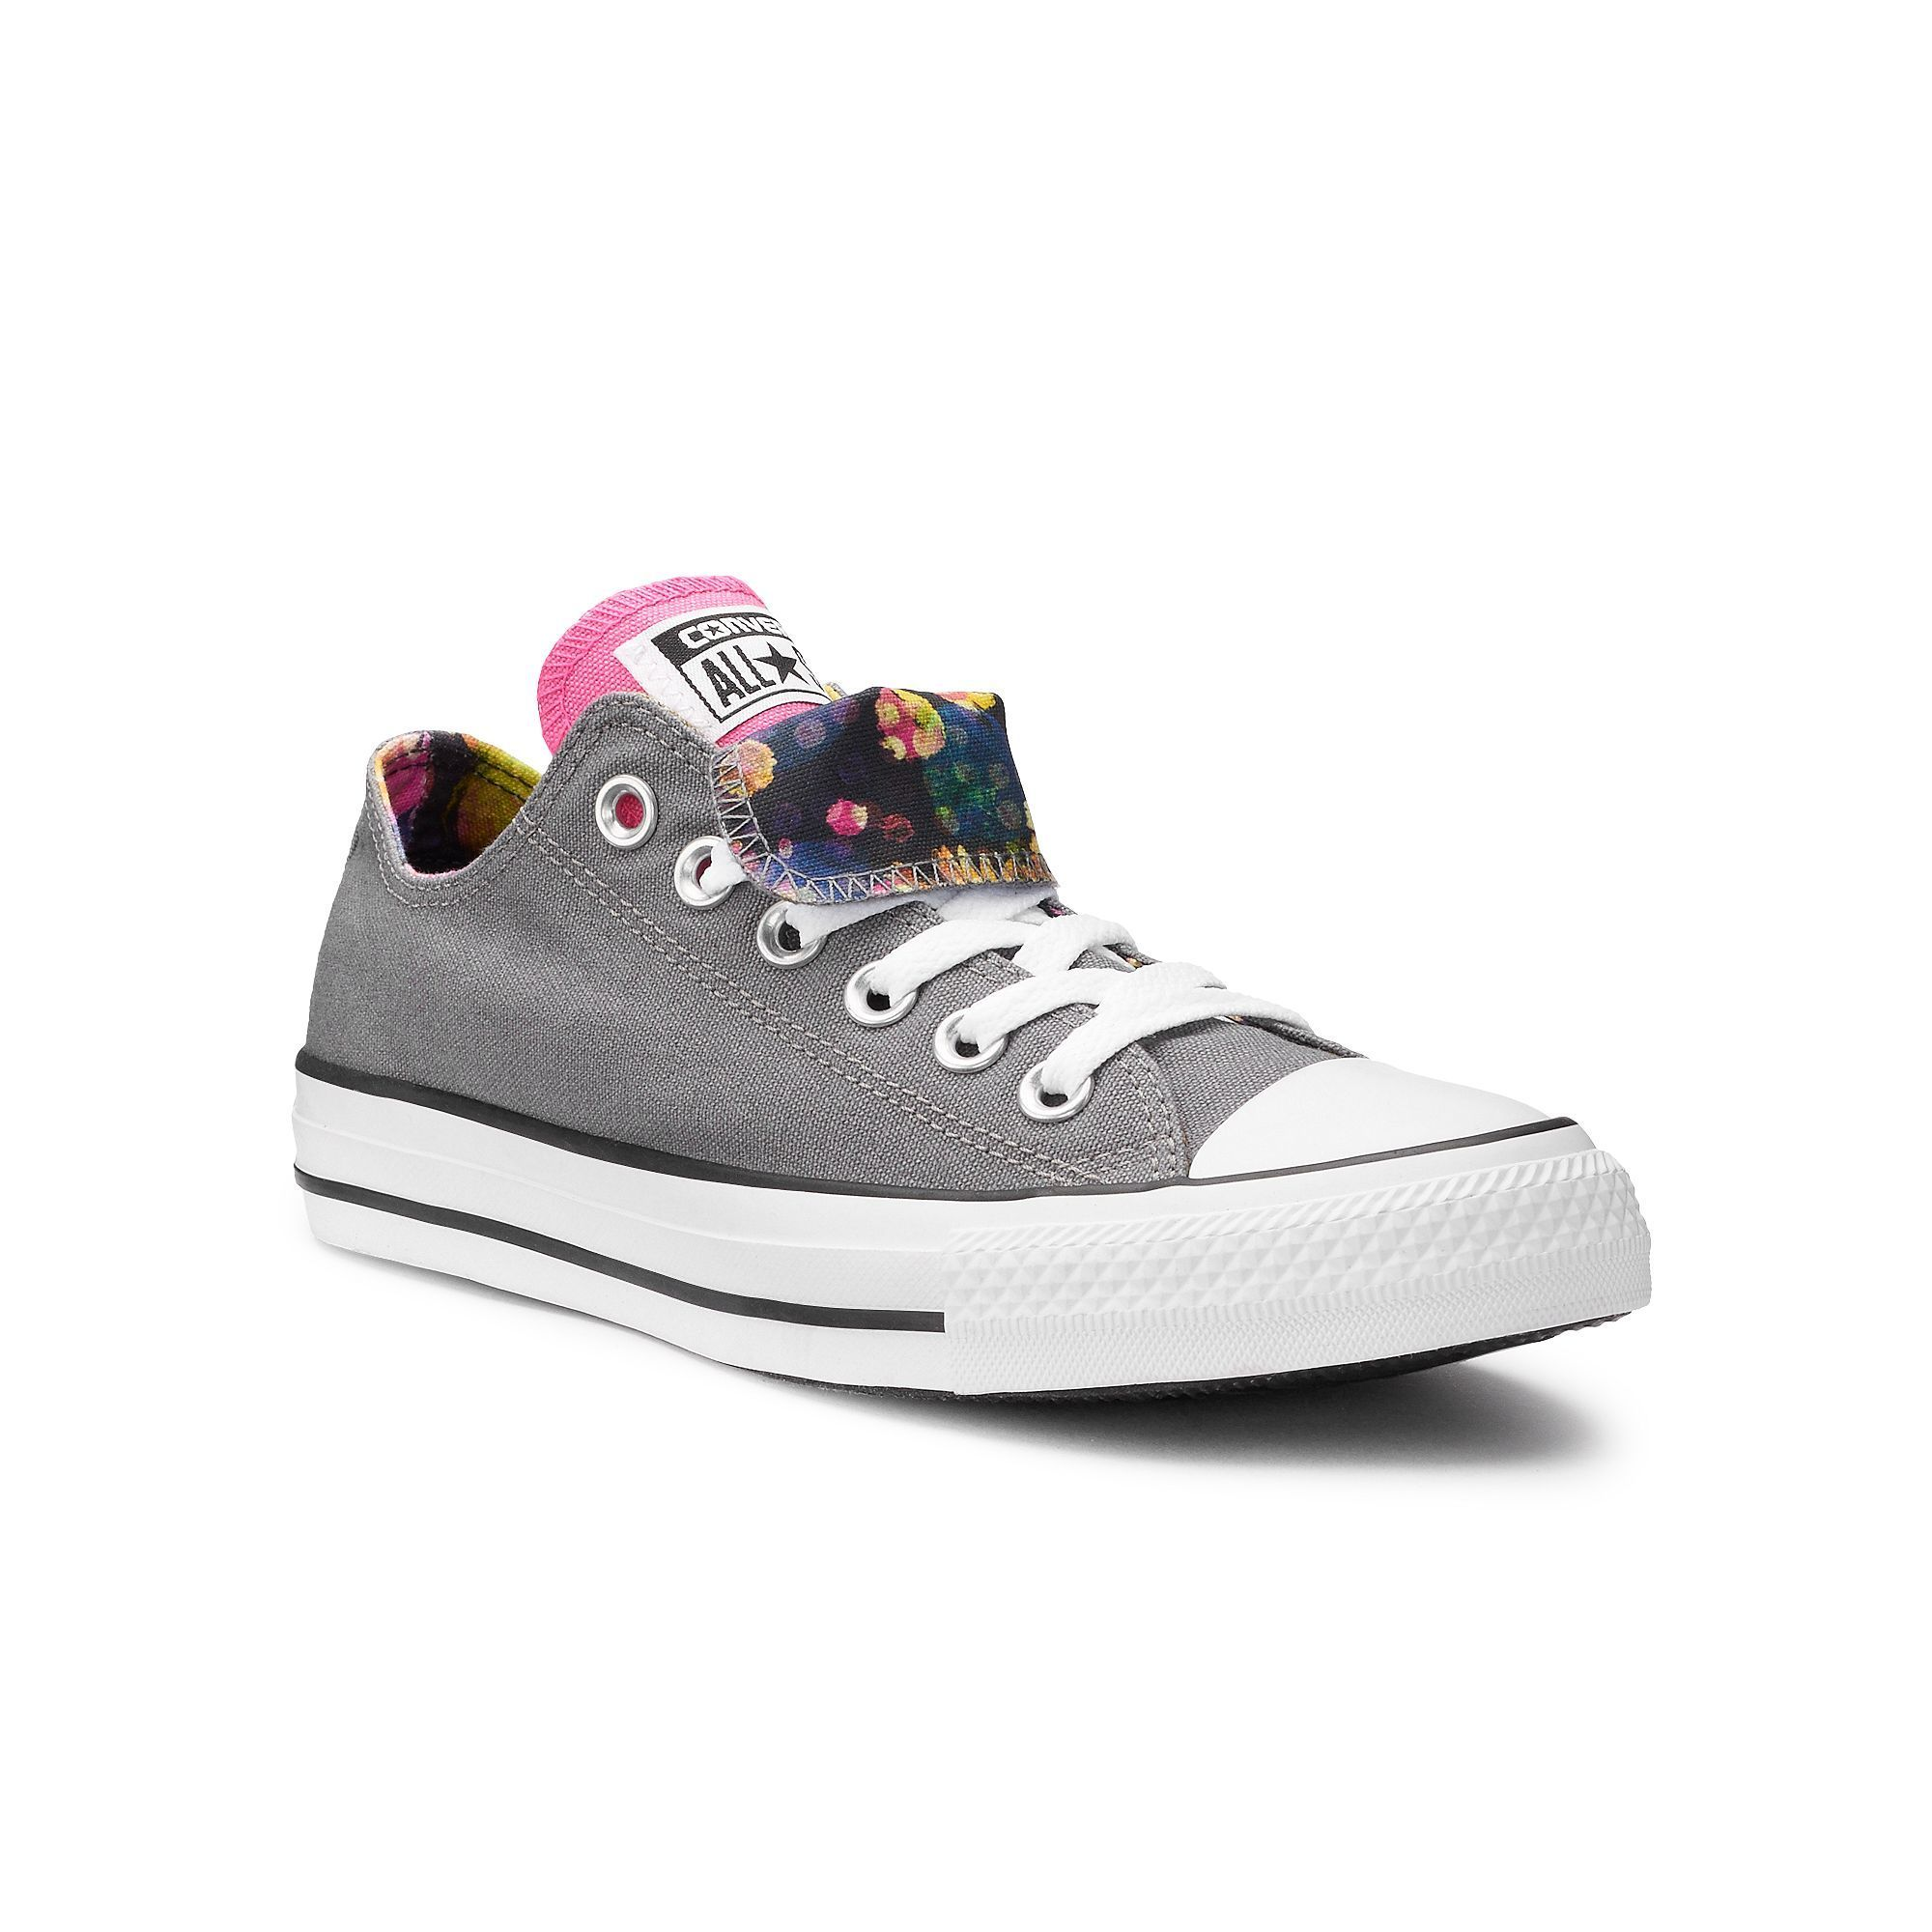 cheap in China clearance fake Women's Converse Chuck Taylor Double Tongue Floral Sneakers shopping online outlet sale discount 2014 unisex dOxX4j0yt